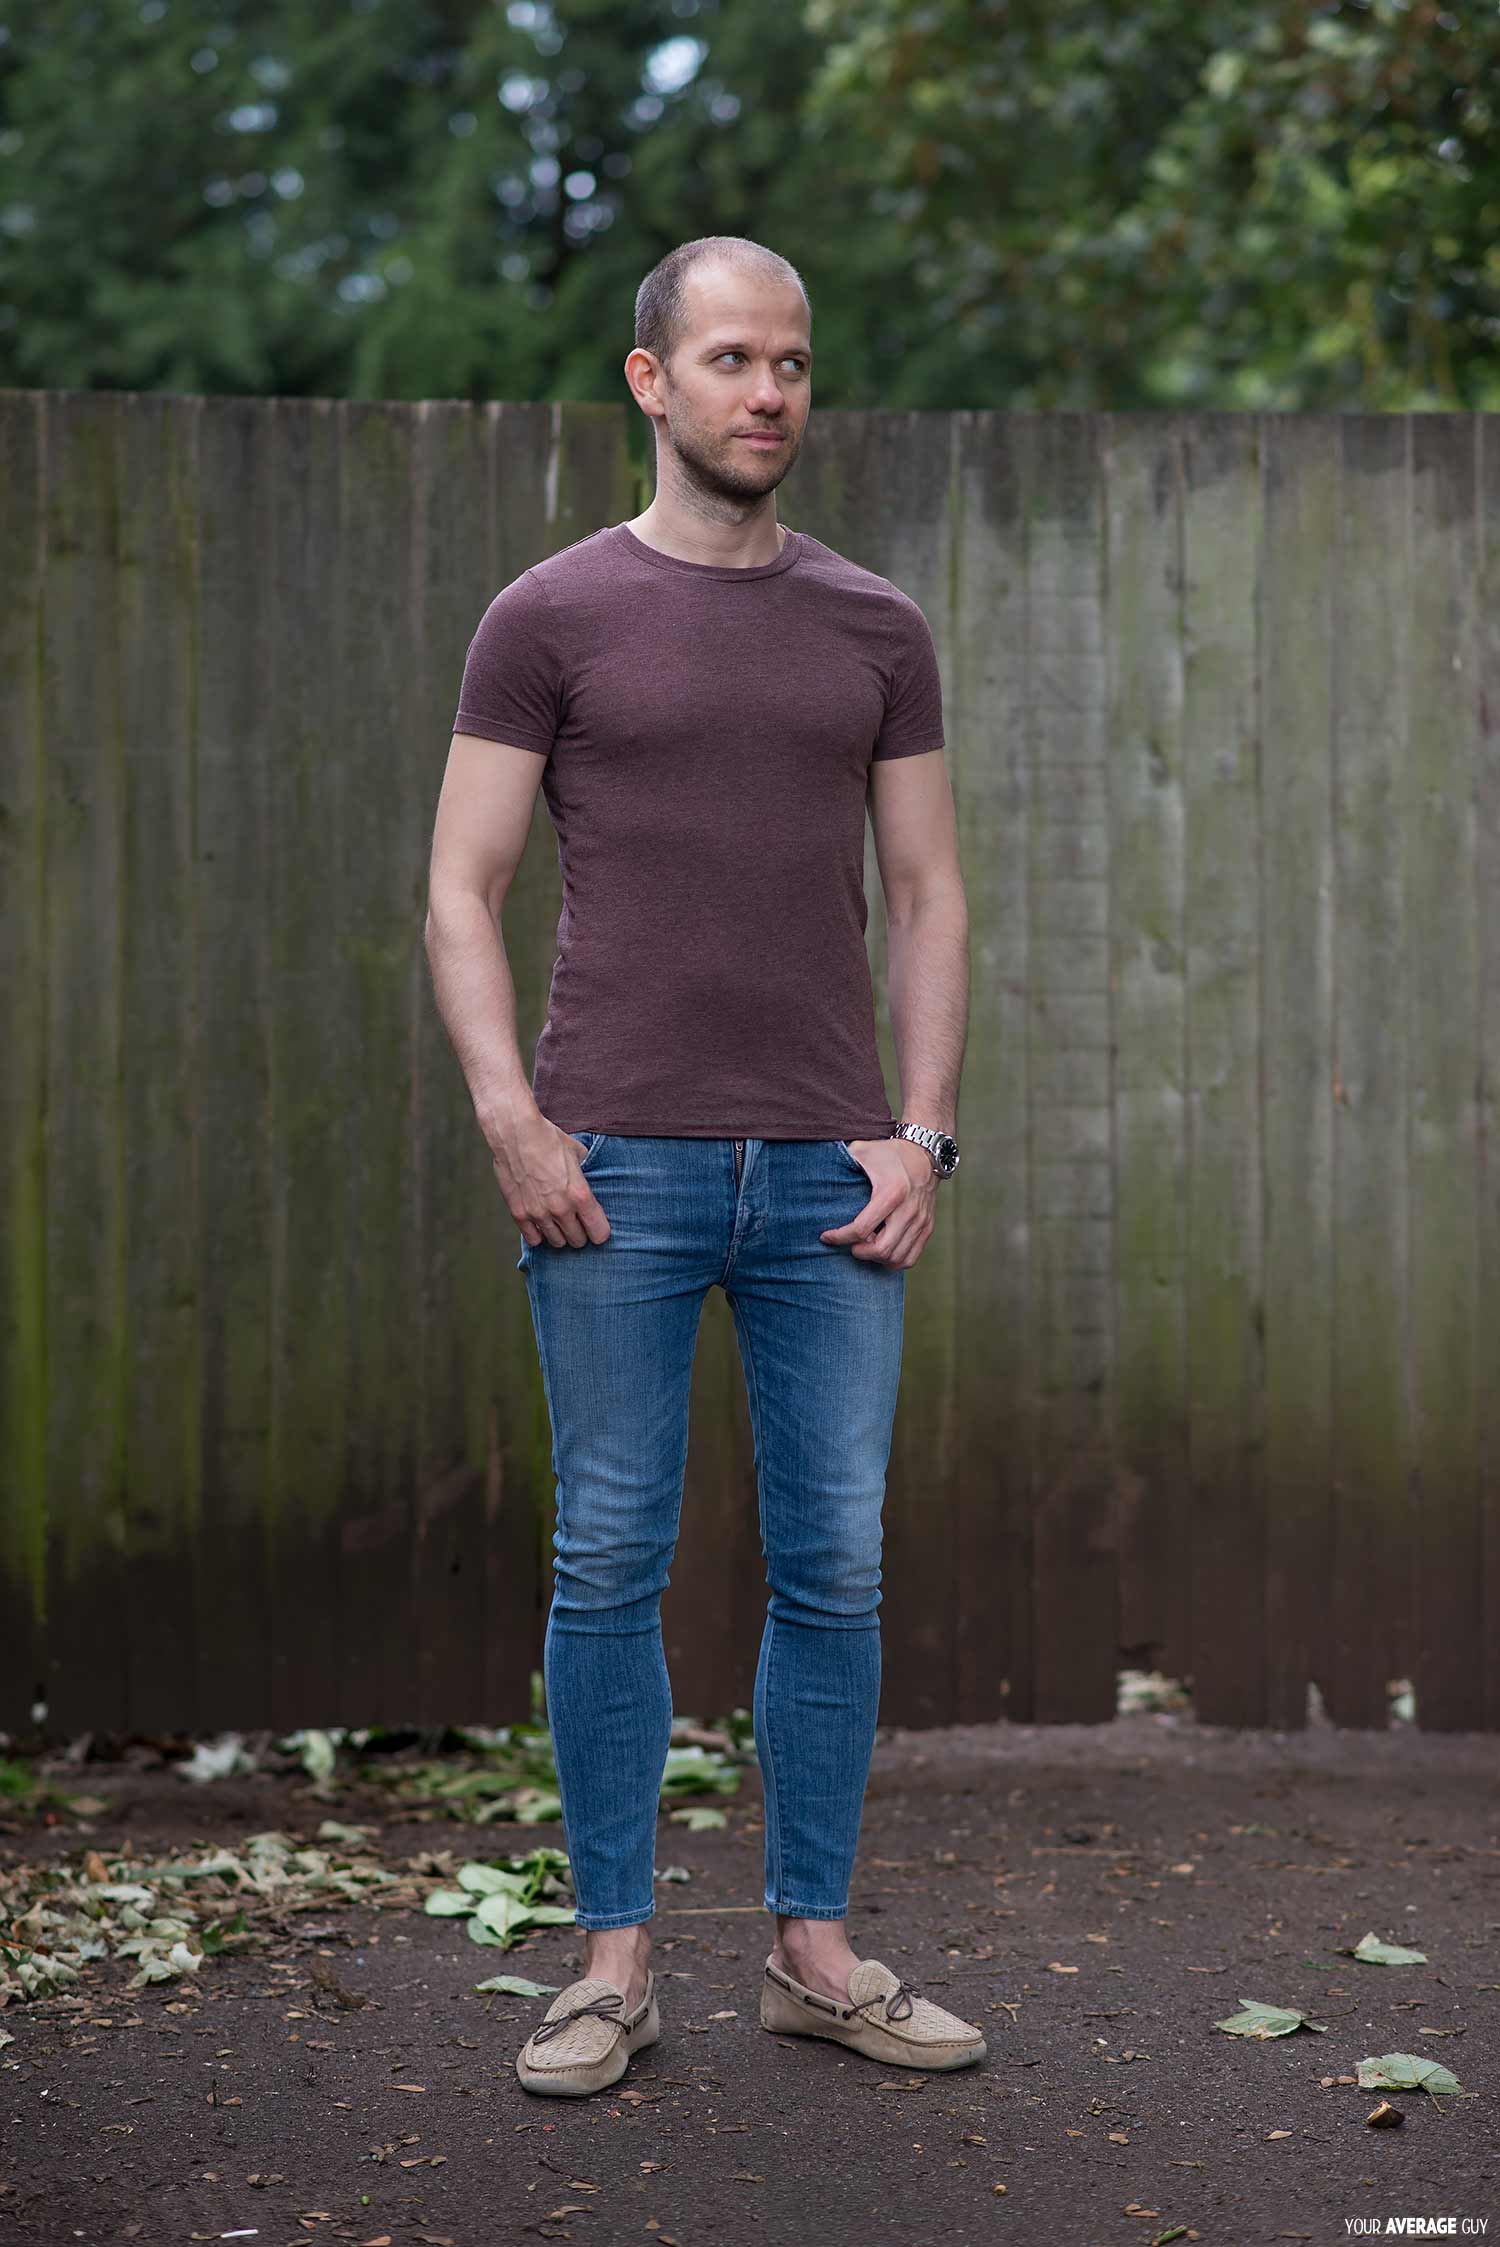 Women S Skinny Jeans For Men Outfit Your Average Guy